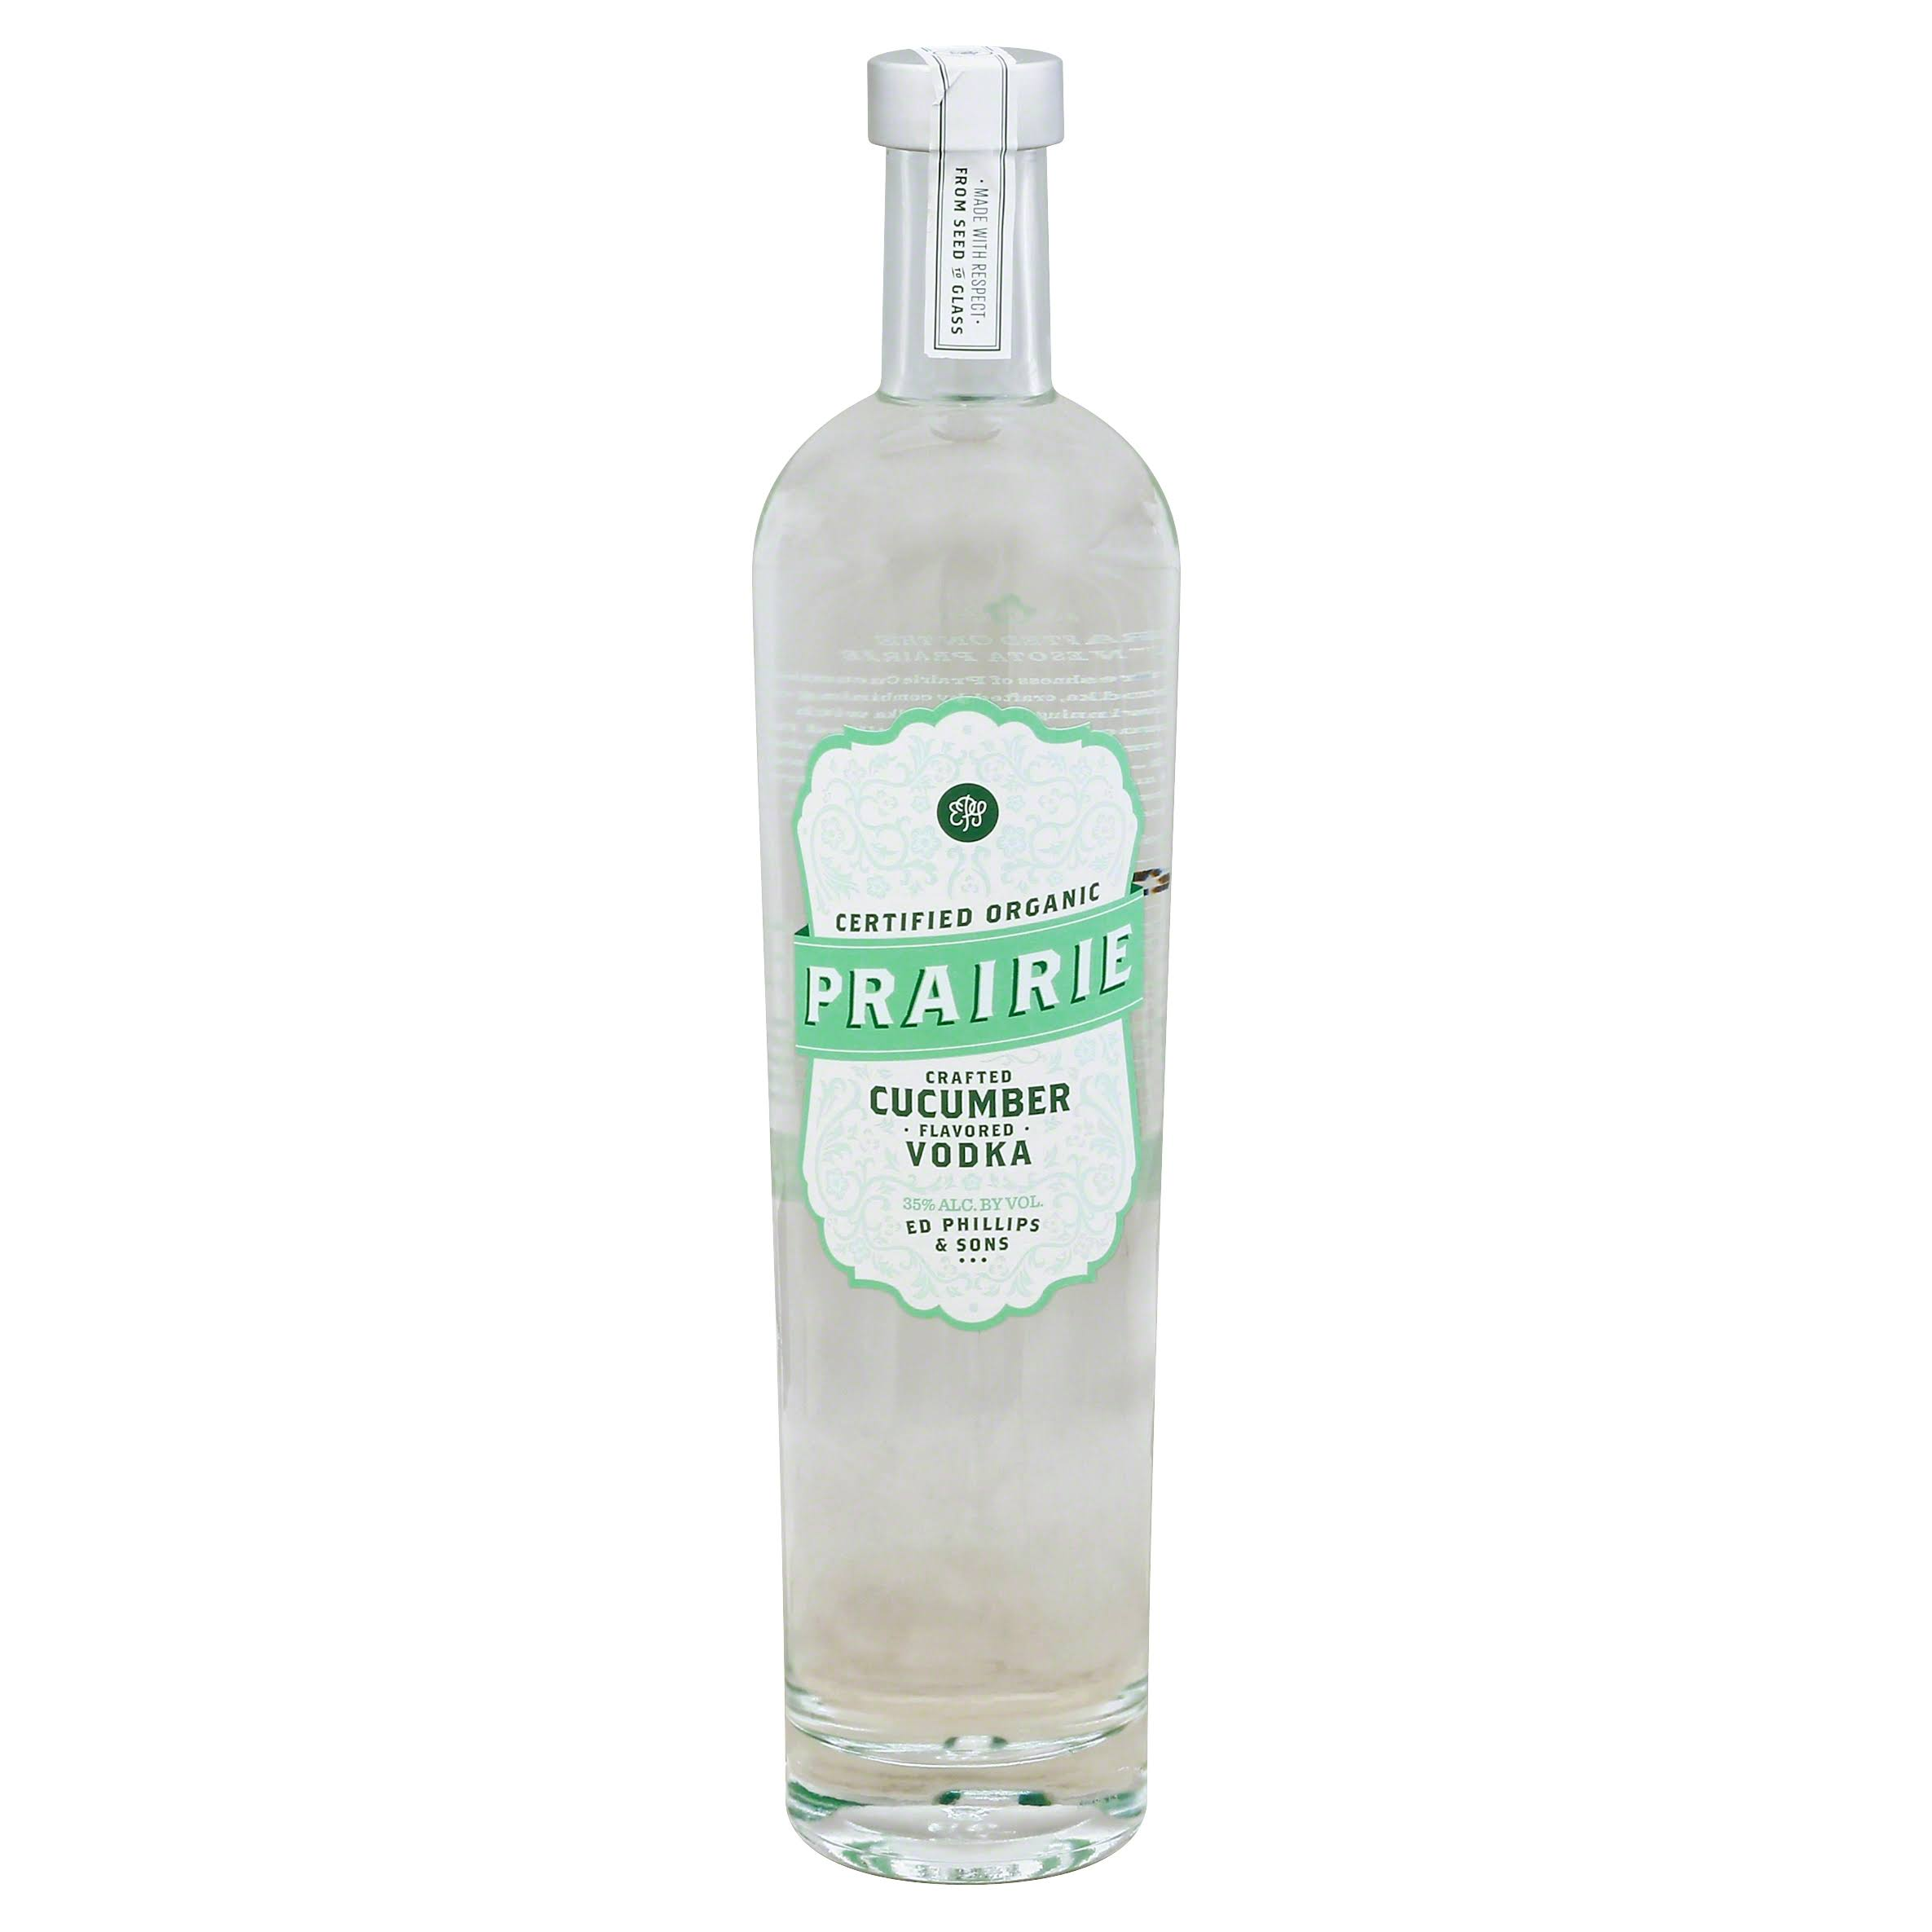 Prairie Handcrafted Vodka - Cucumber Flavored